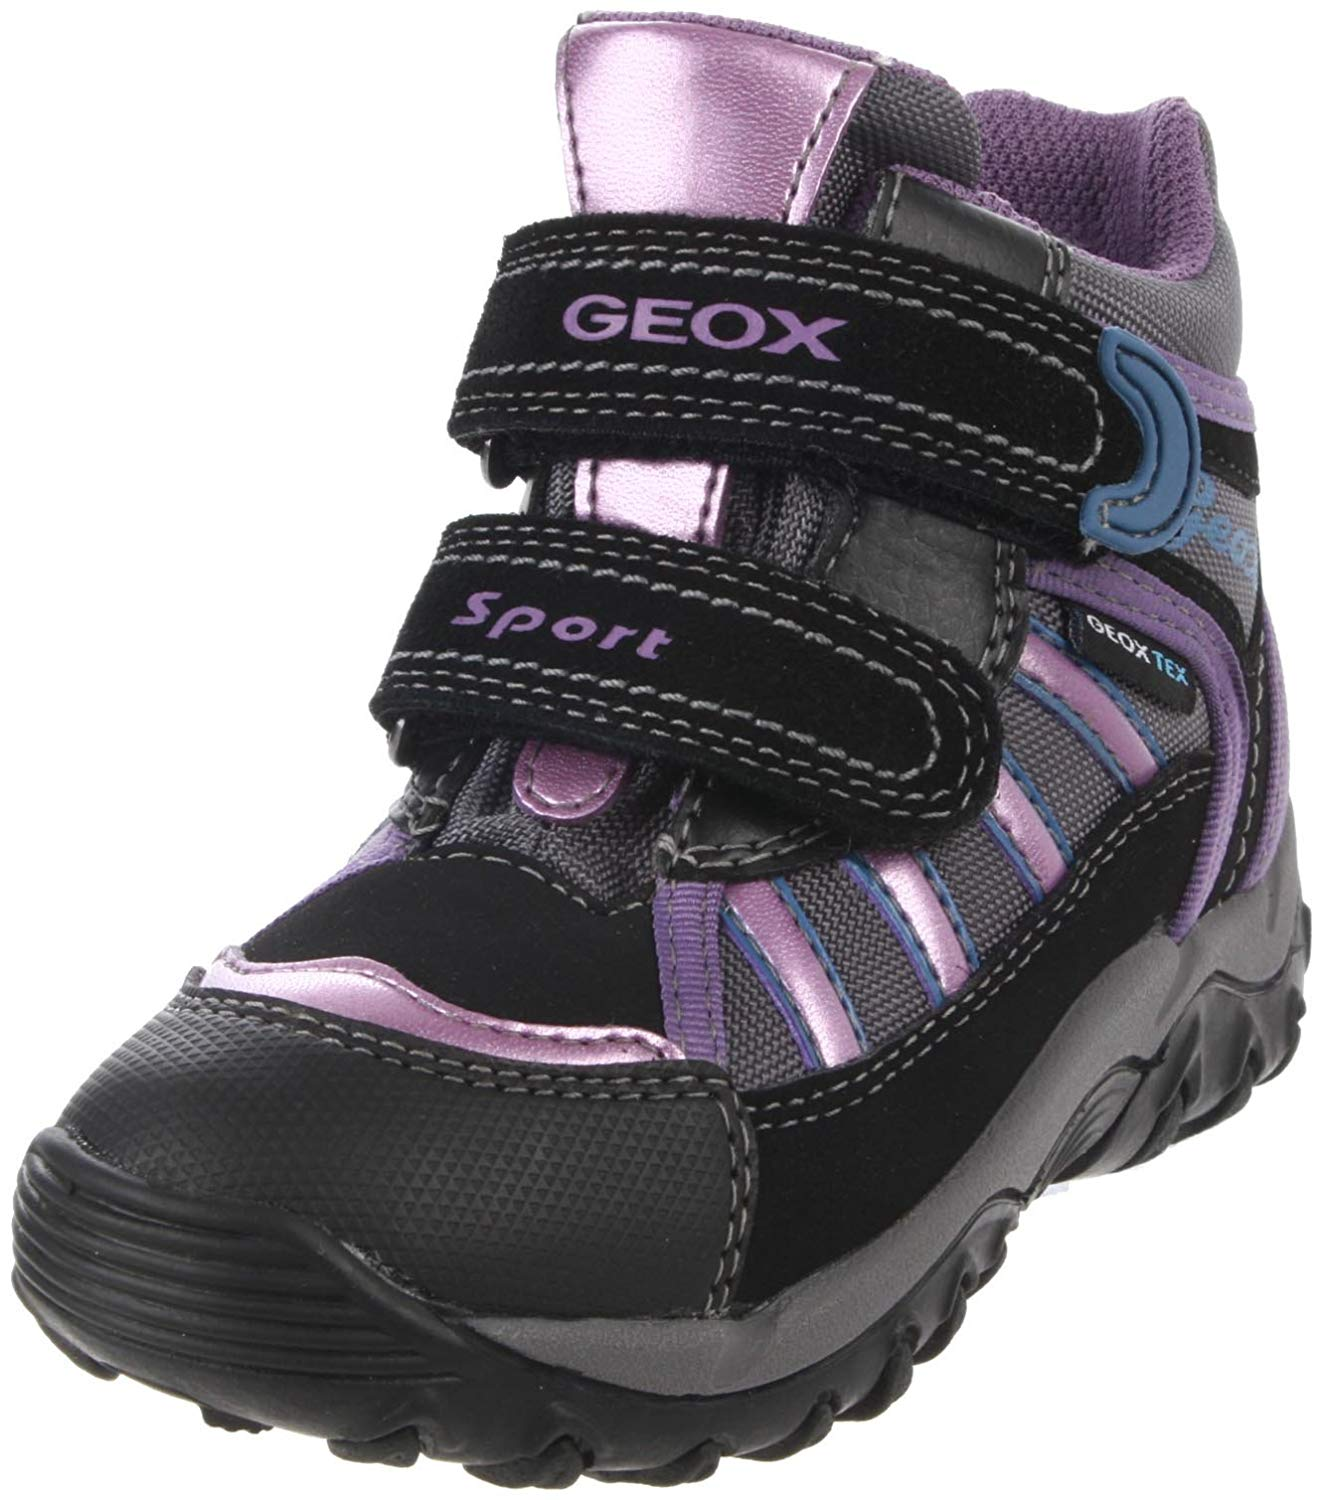 fdf448a666 Get Quotations · Geox Kid s Alaska 4 Snow Boot (Toddler Little Kid Big ...